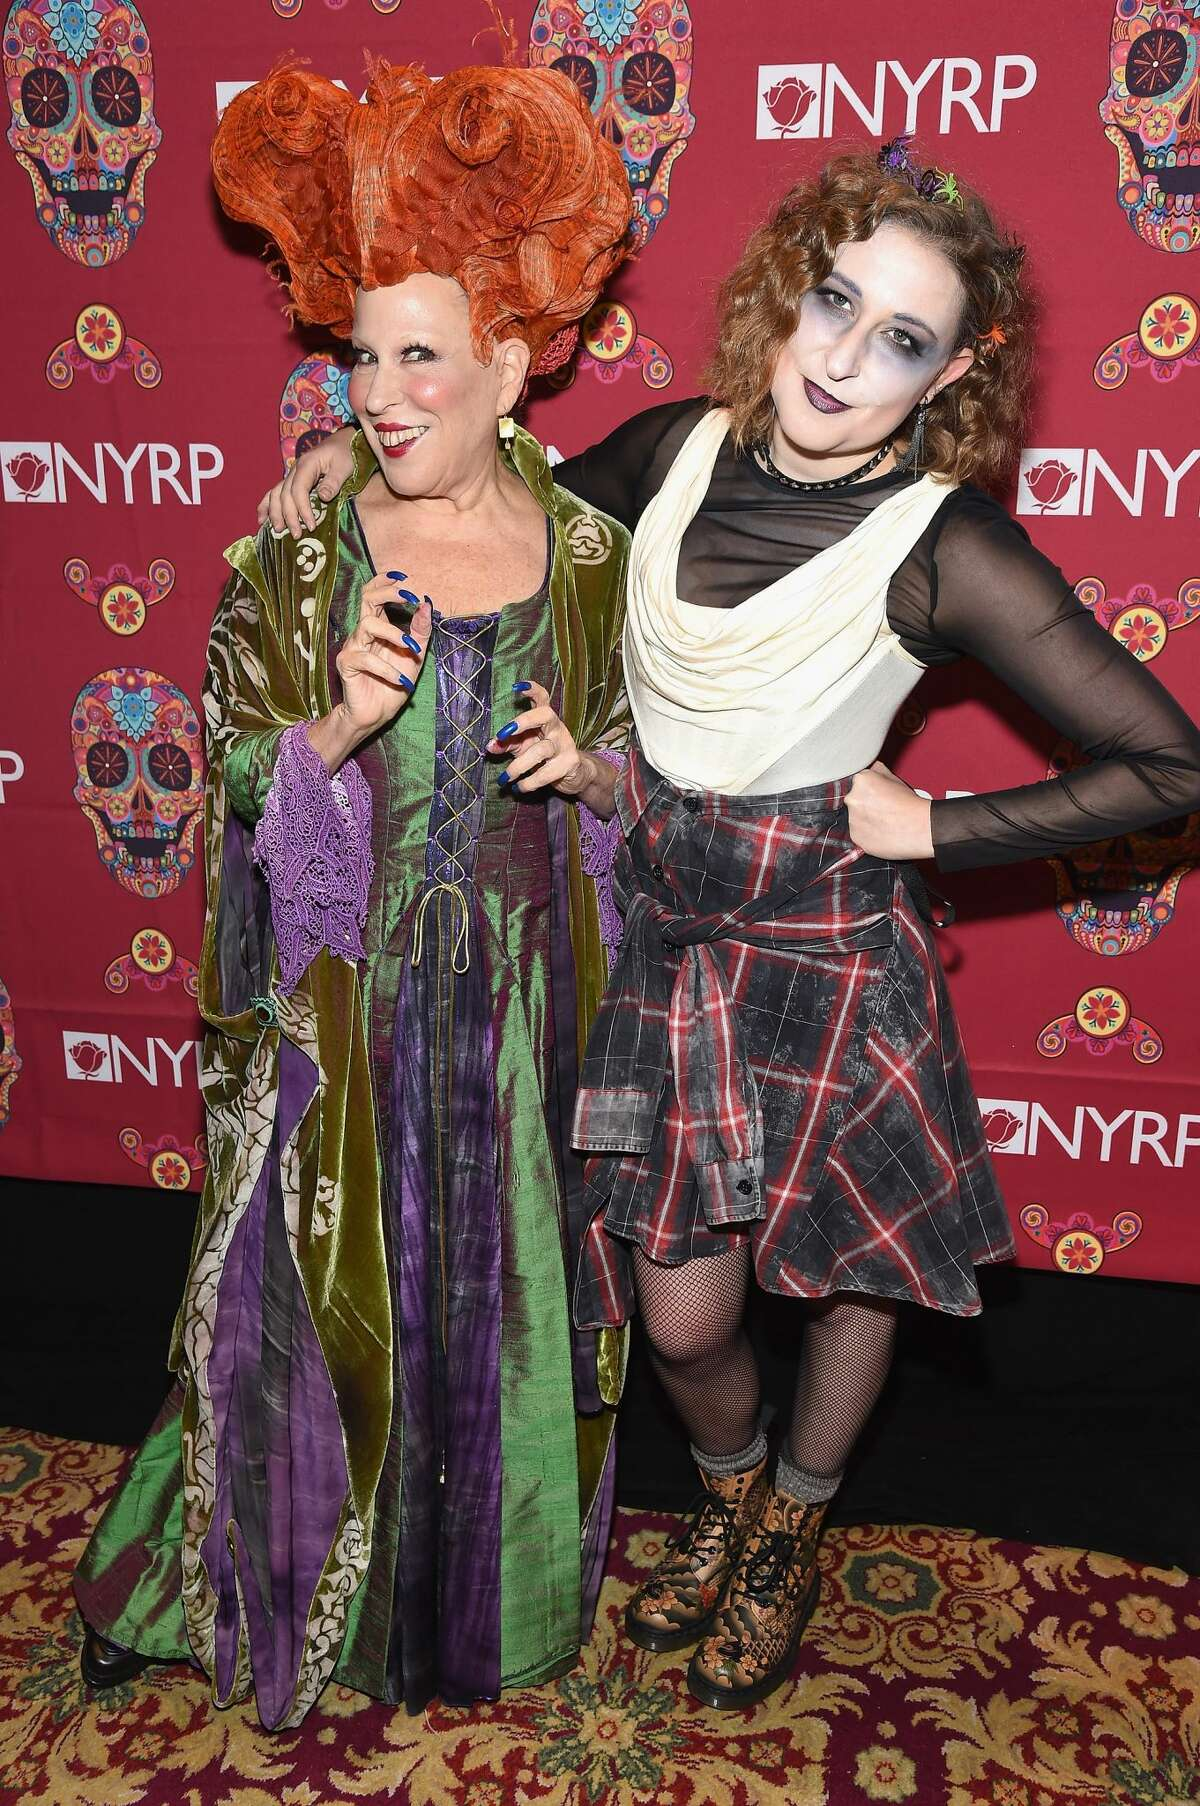 NEW YORK, NY - OCTOBER 28: Founder of The New York Restoration Project, Bette Midler and daughter, actress Sophie Von Haselberg attend the 2016 Hulaween Bash at The Waldorf=Astoria on October 28, 2016 in New York City. (Photo by Gary Gershoff/WireImage)